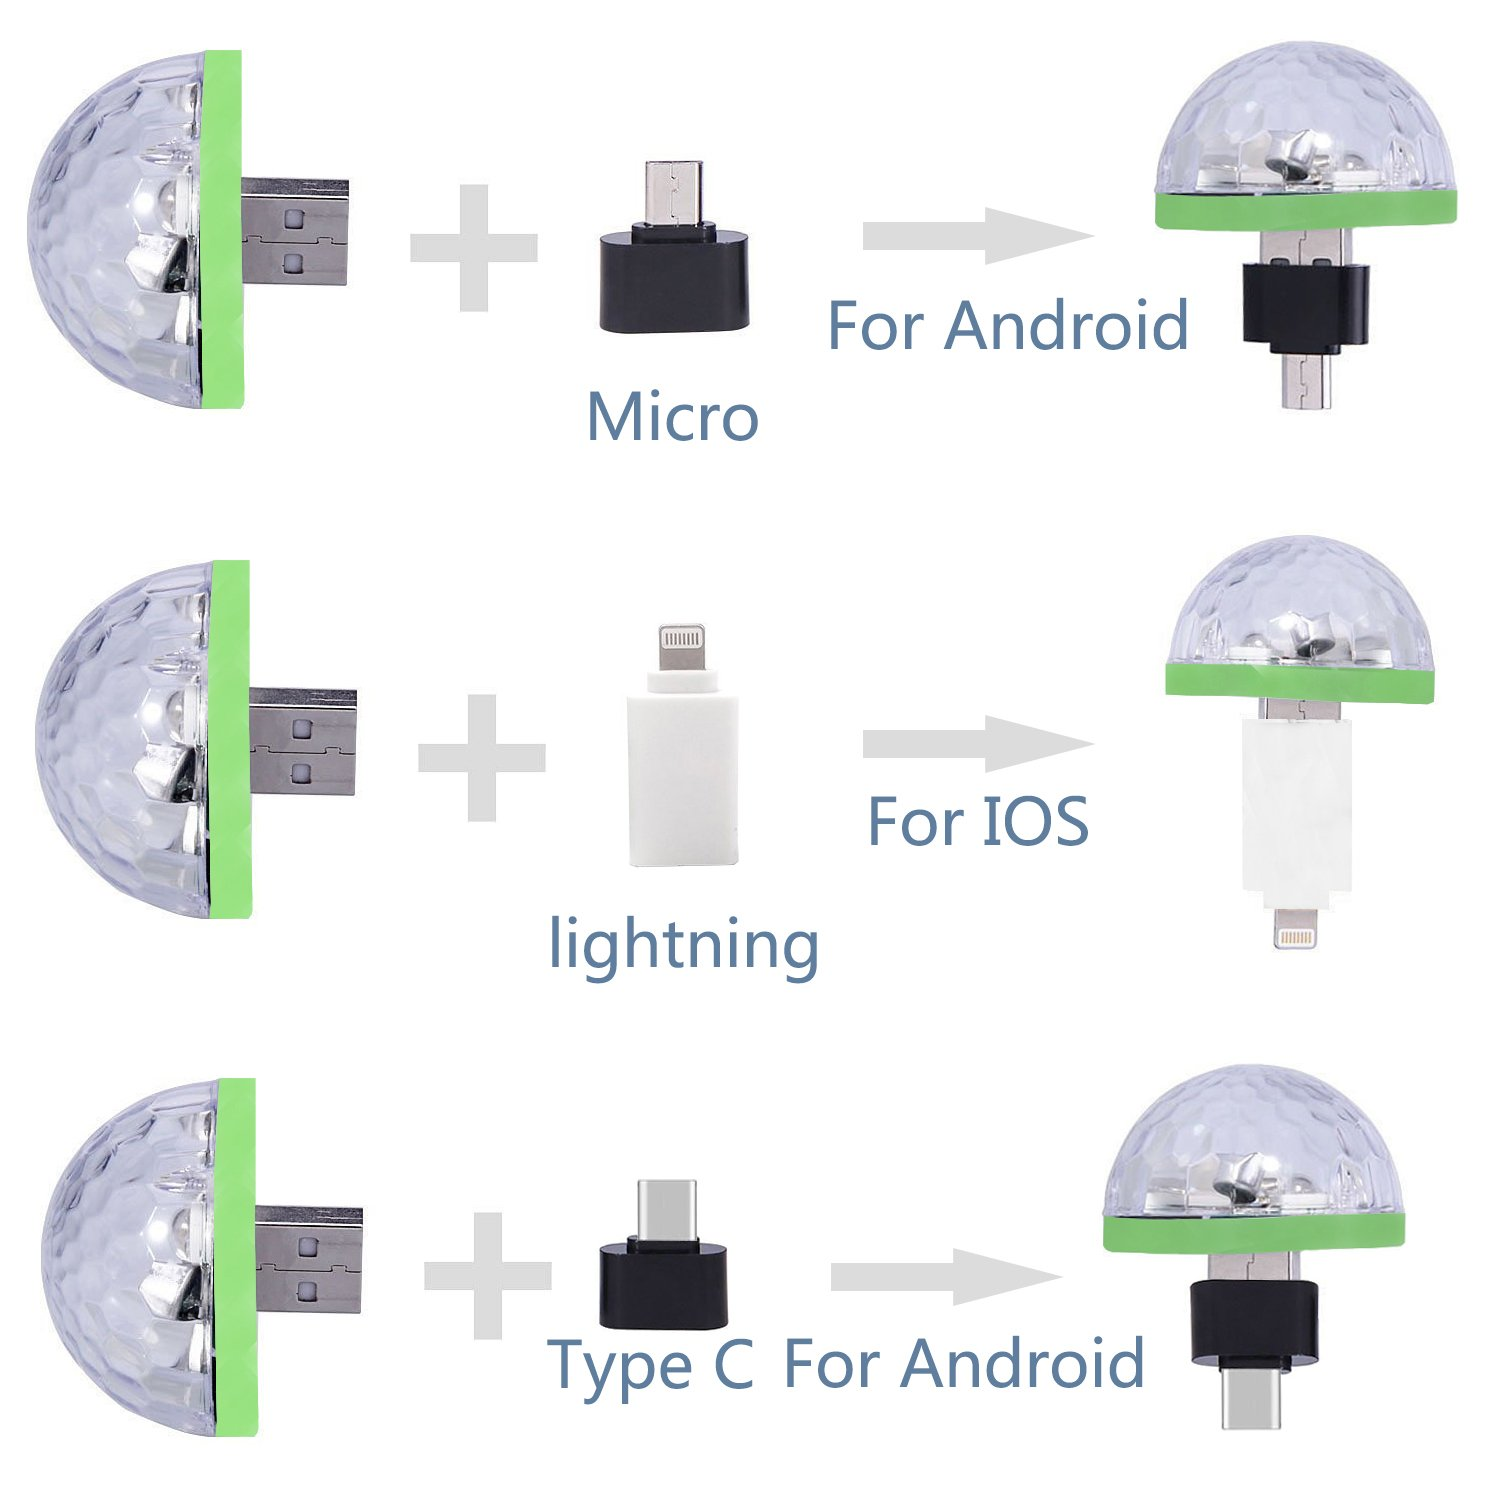 USB Lightning Micro USB USB-C Disco Ball 4